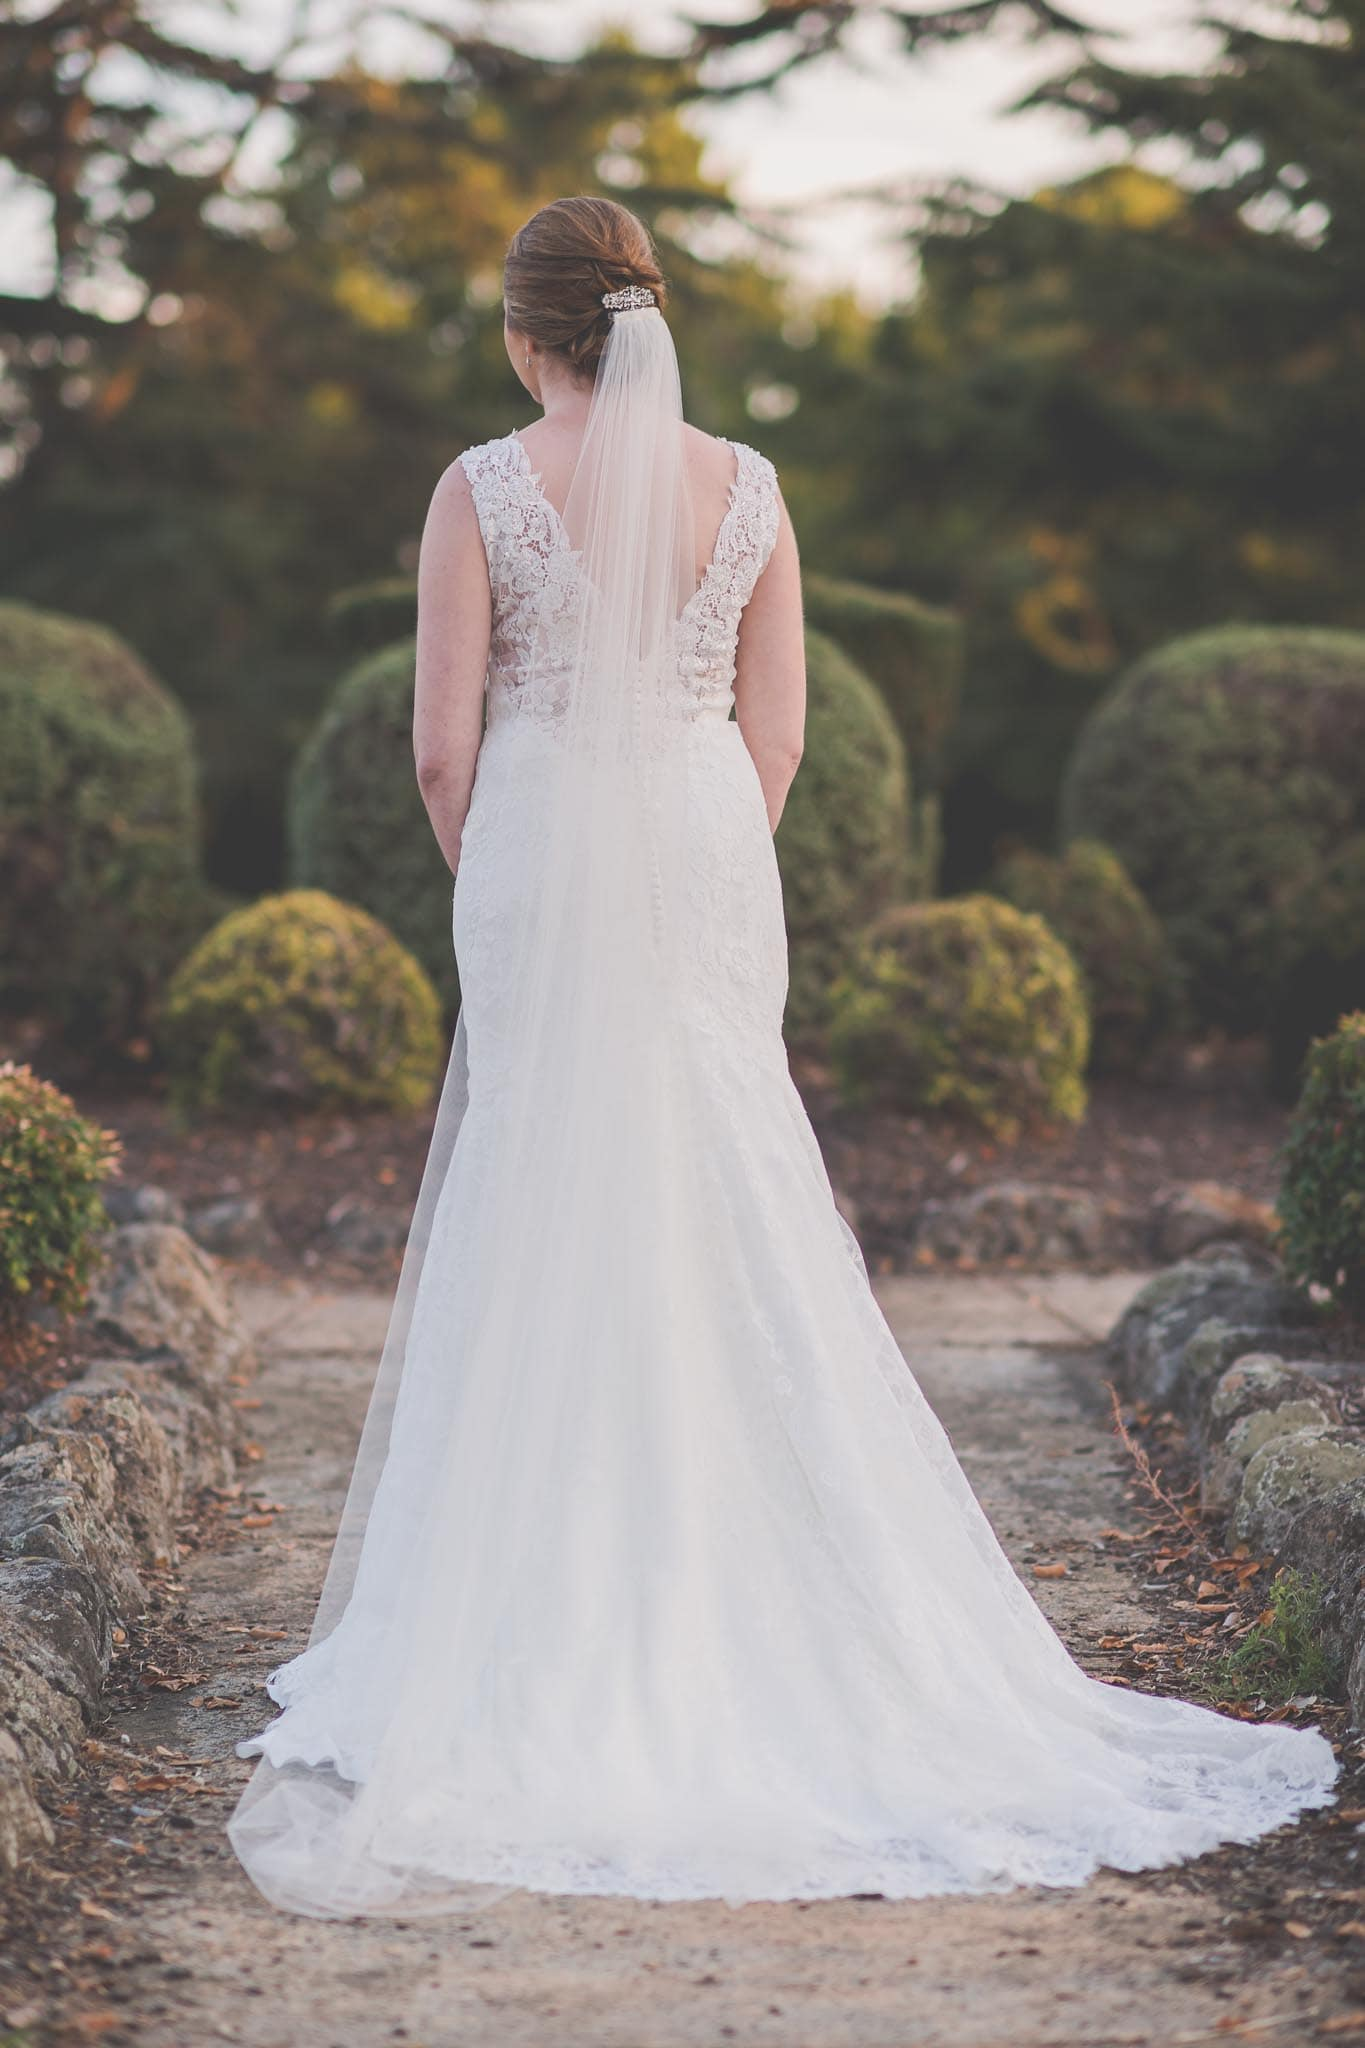 Melbourne wedding dress photography by Pause The Moment. Melbourne's best wedding photographer.